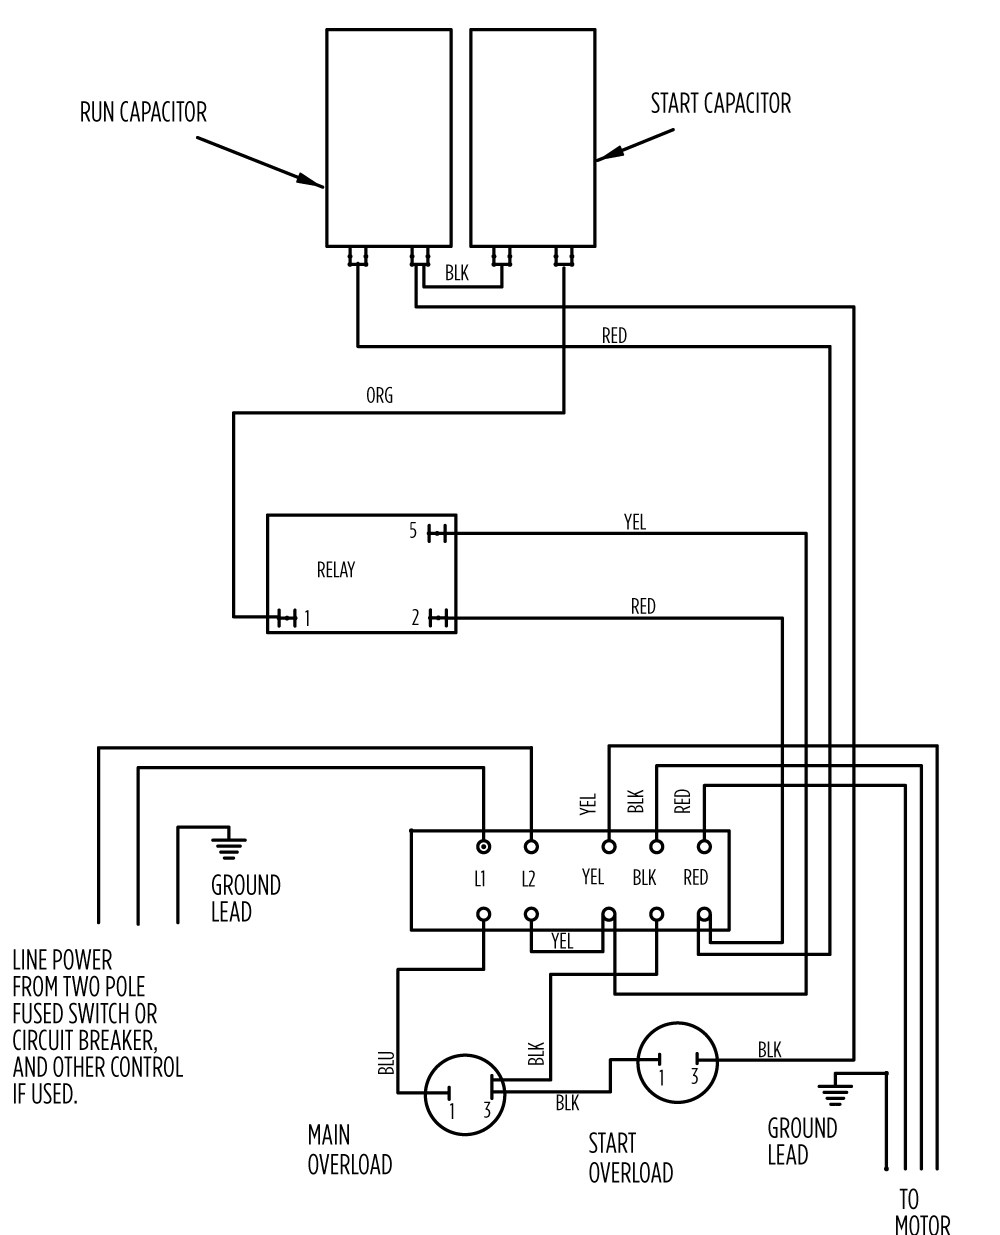 single phase induction motor wiring diagram pdf - somurich.com ge induction motor wiring diagram induction motor circuit diagram pdf #14